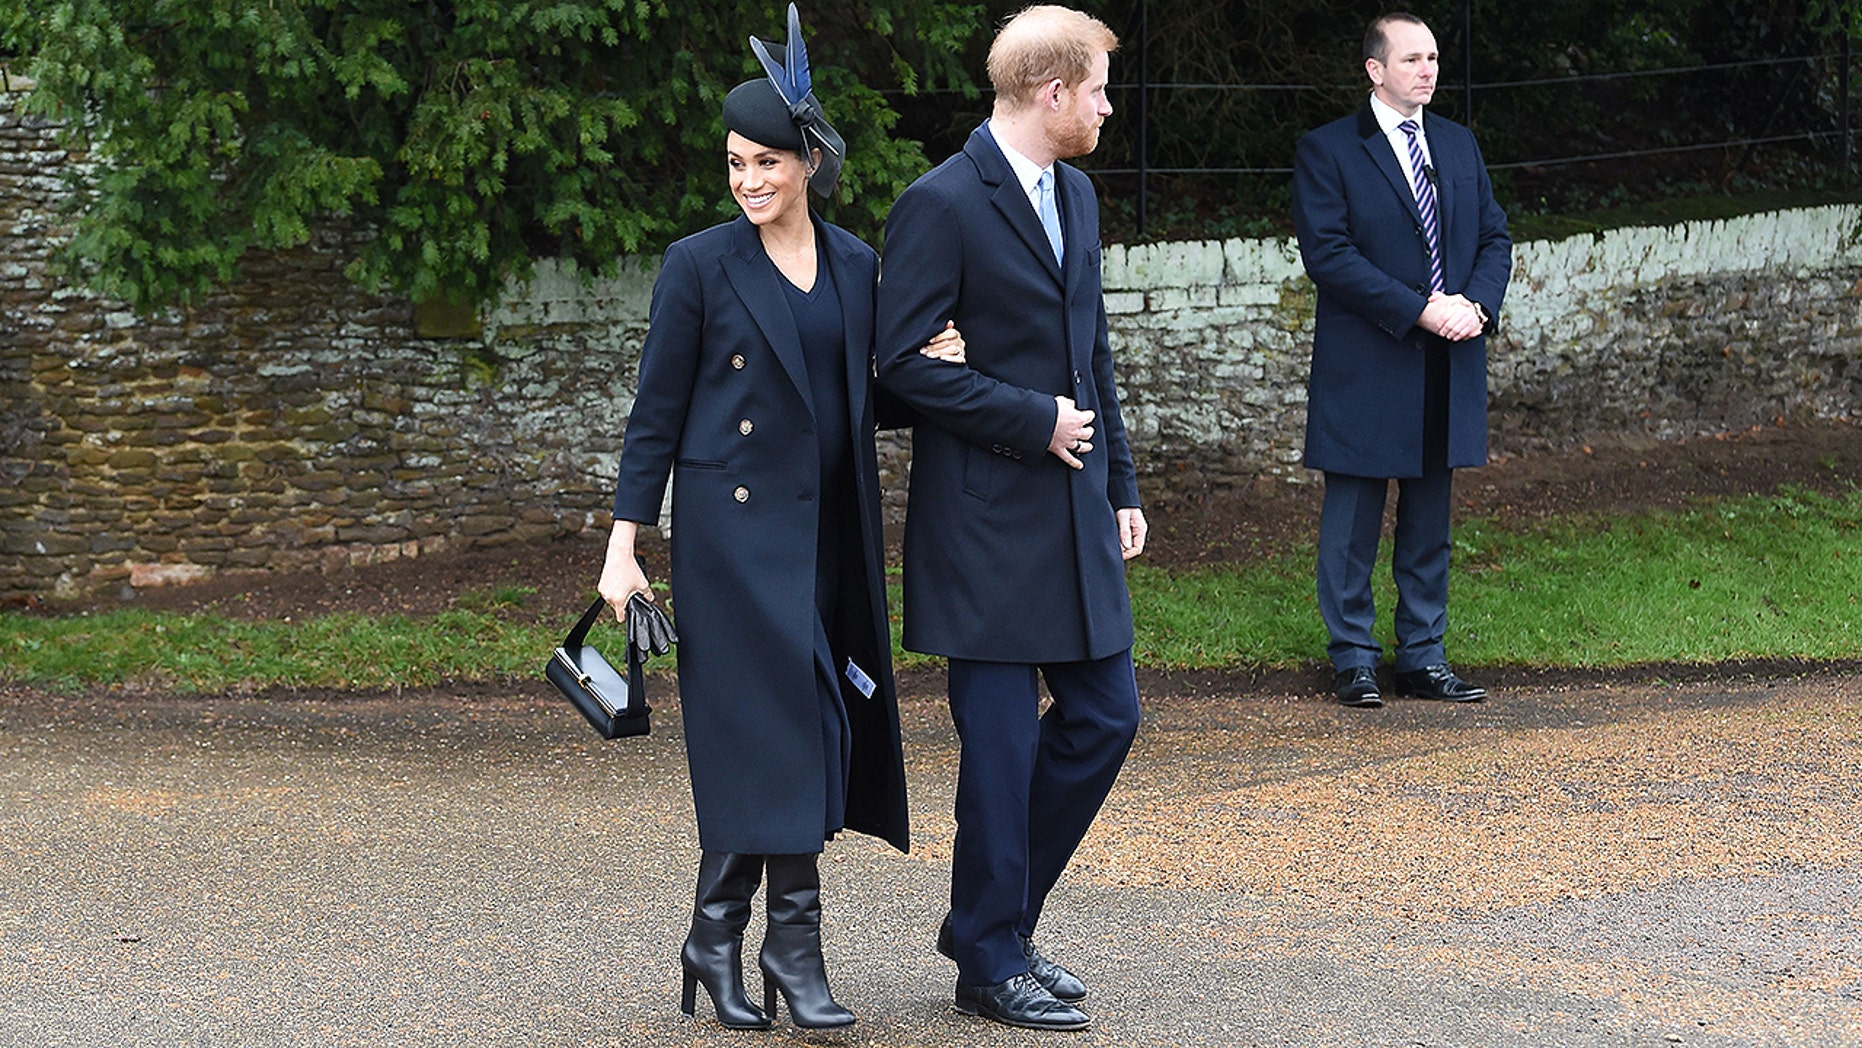 Meghan Markle wearing Victoria Beckham's designs on Christmas 2018 with Prince Harry